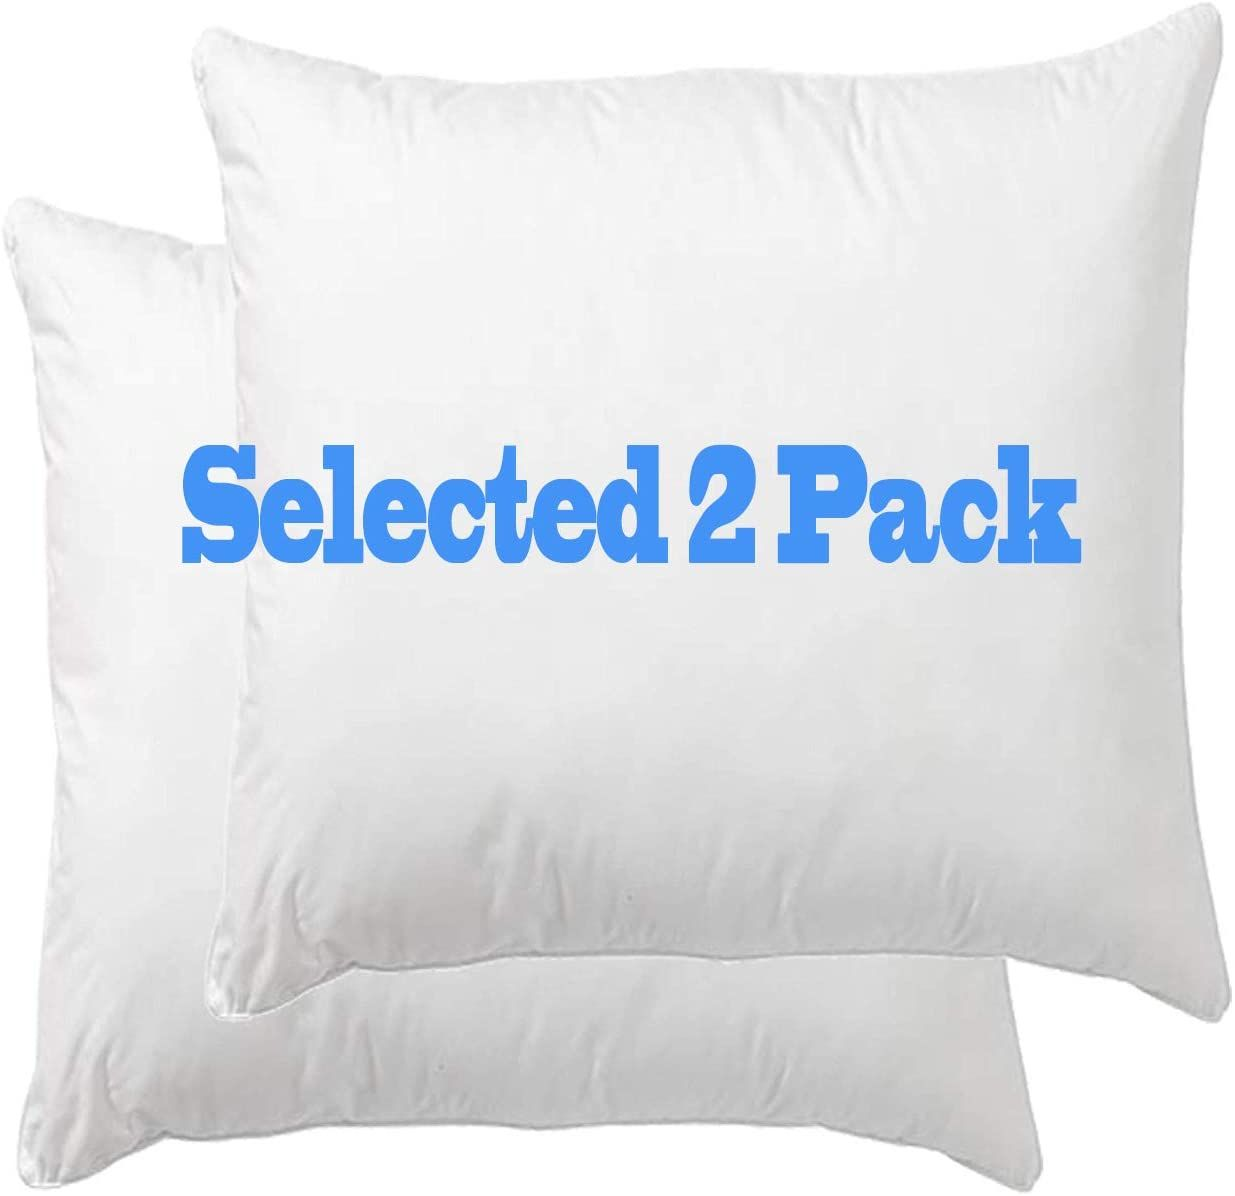 Amazon Com Danmitex Set Of 2 20x20 Down Feather Throw Pillow Inserts Cotton Fabric Home Kitchen Throw Pillow Inserts Feather Pillows Oblong Throw Pillow Pillow inserts 20 x 20